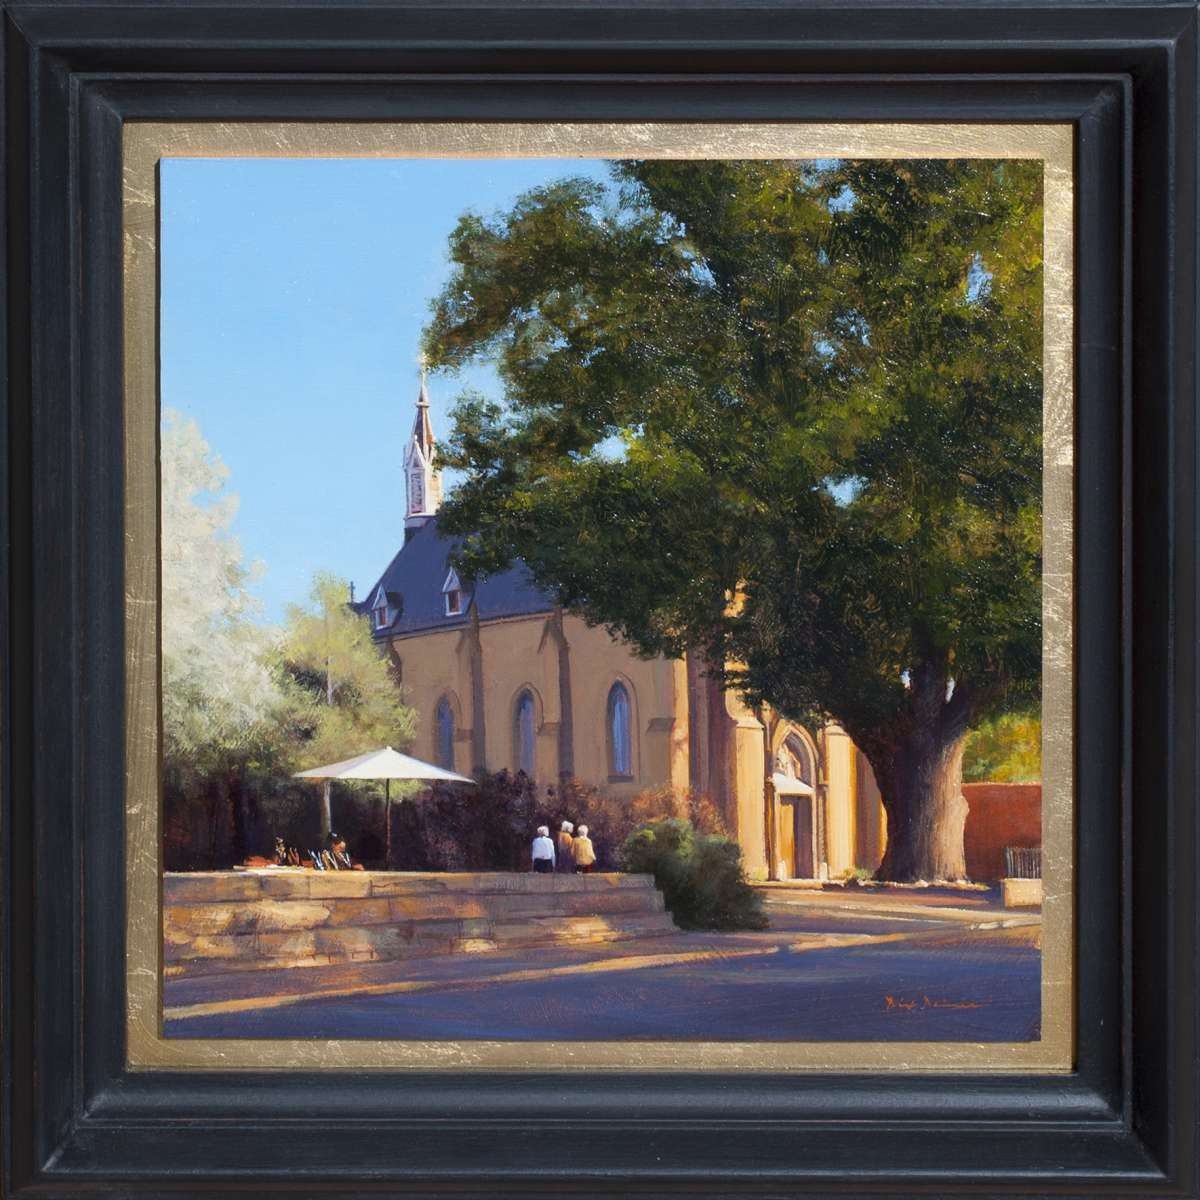 painting of the Loretto Chapel in Santa Fe by Dix Baines